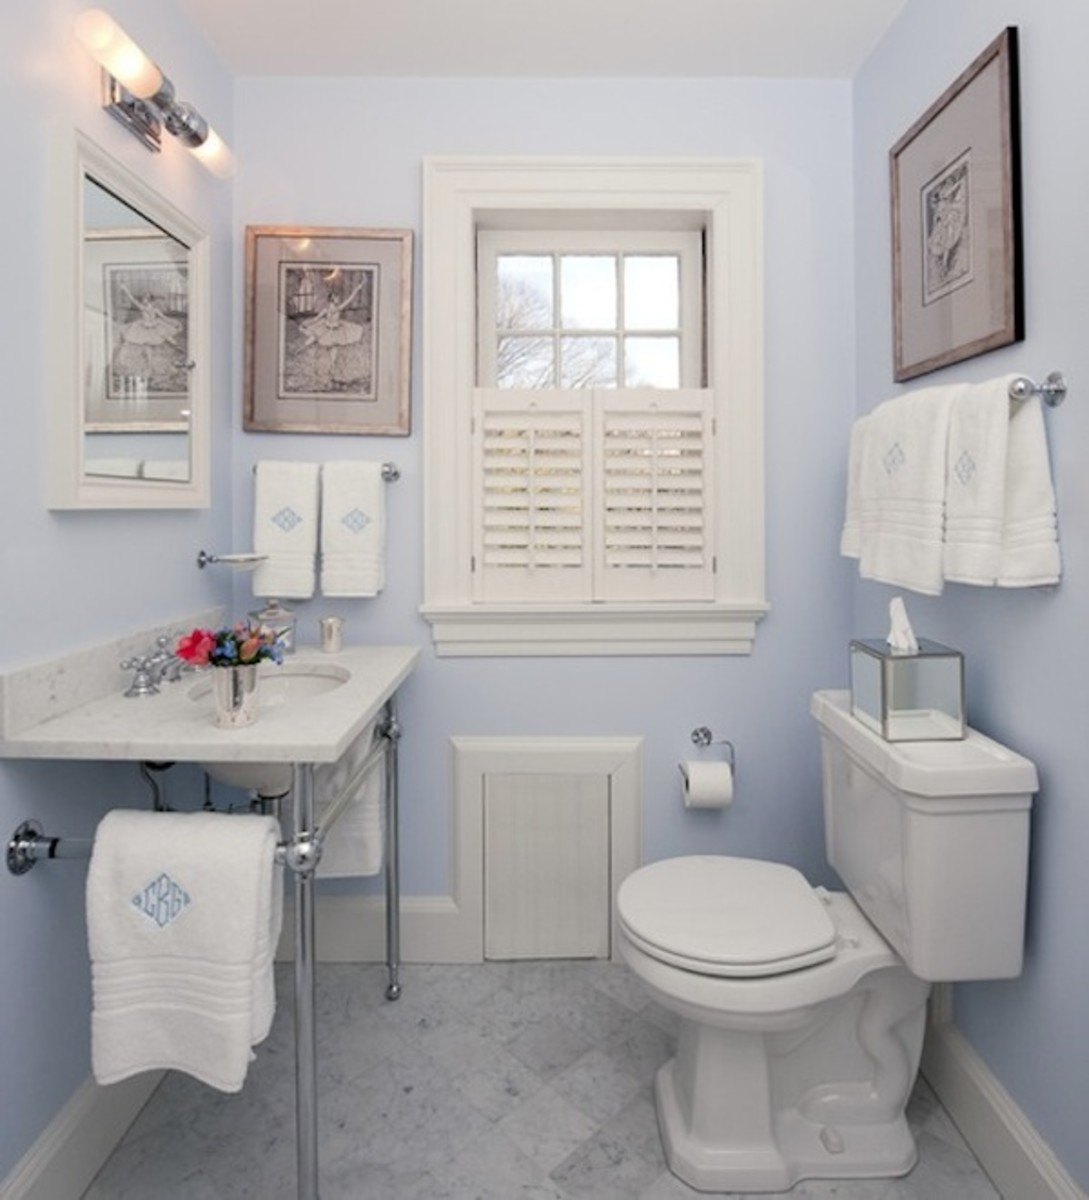 This bathroom is painted in a light blue which allows the light to bounce and reflect off the walls and give you a feel of openness.